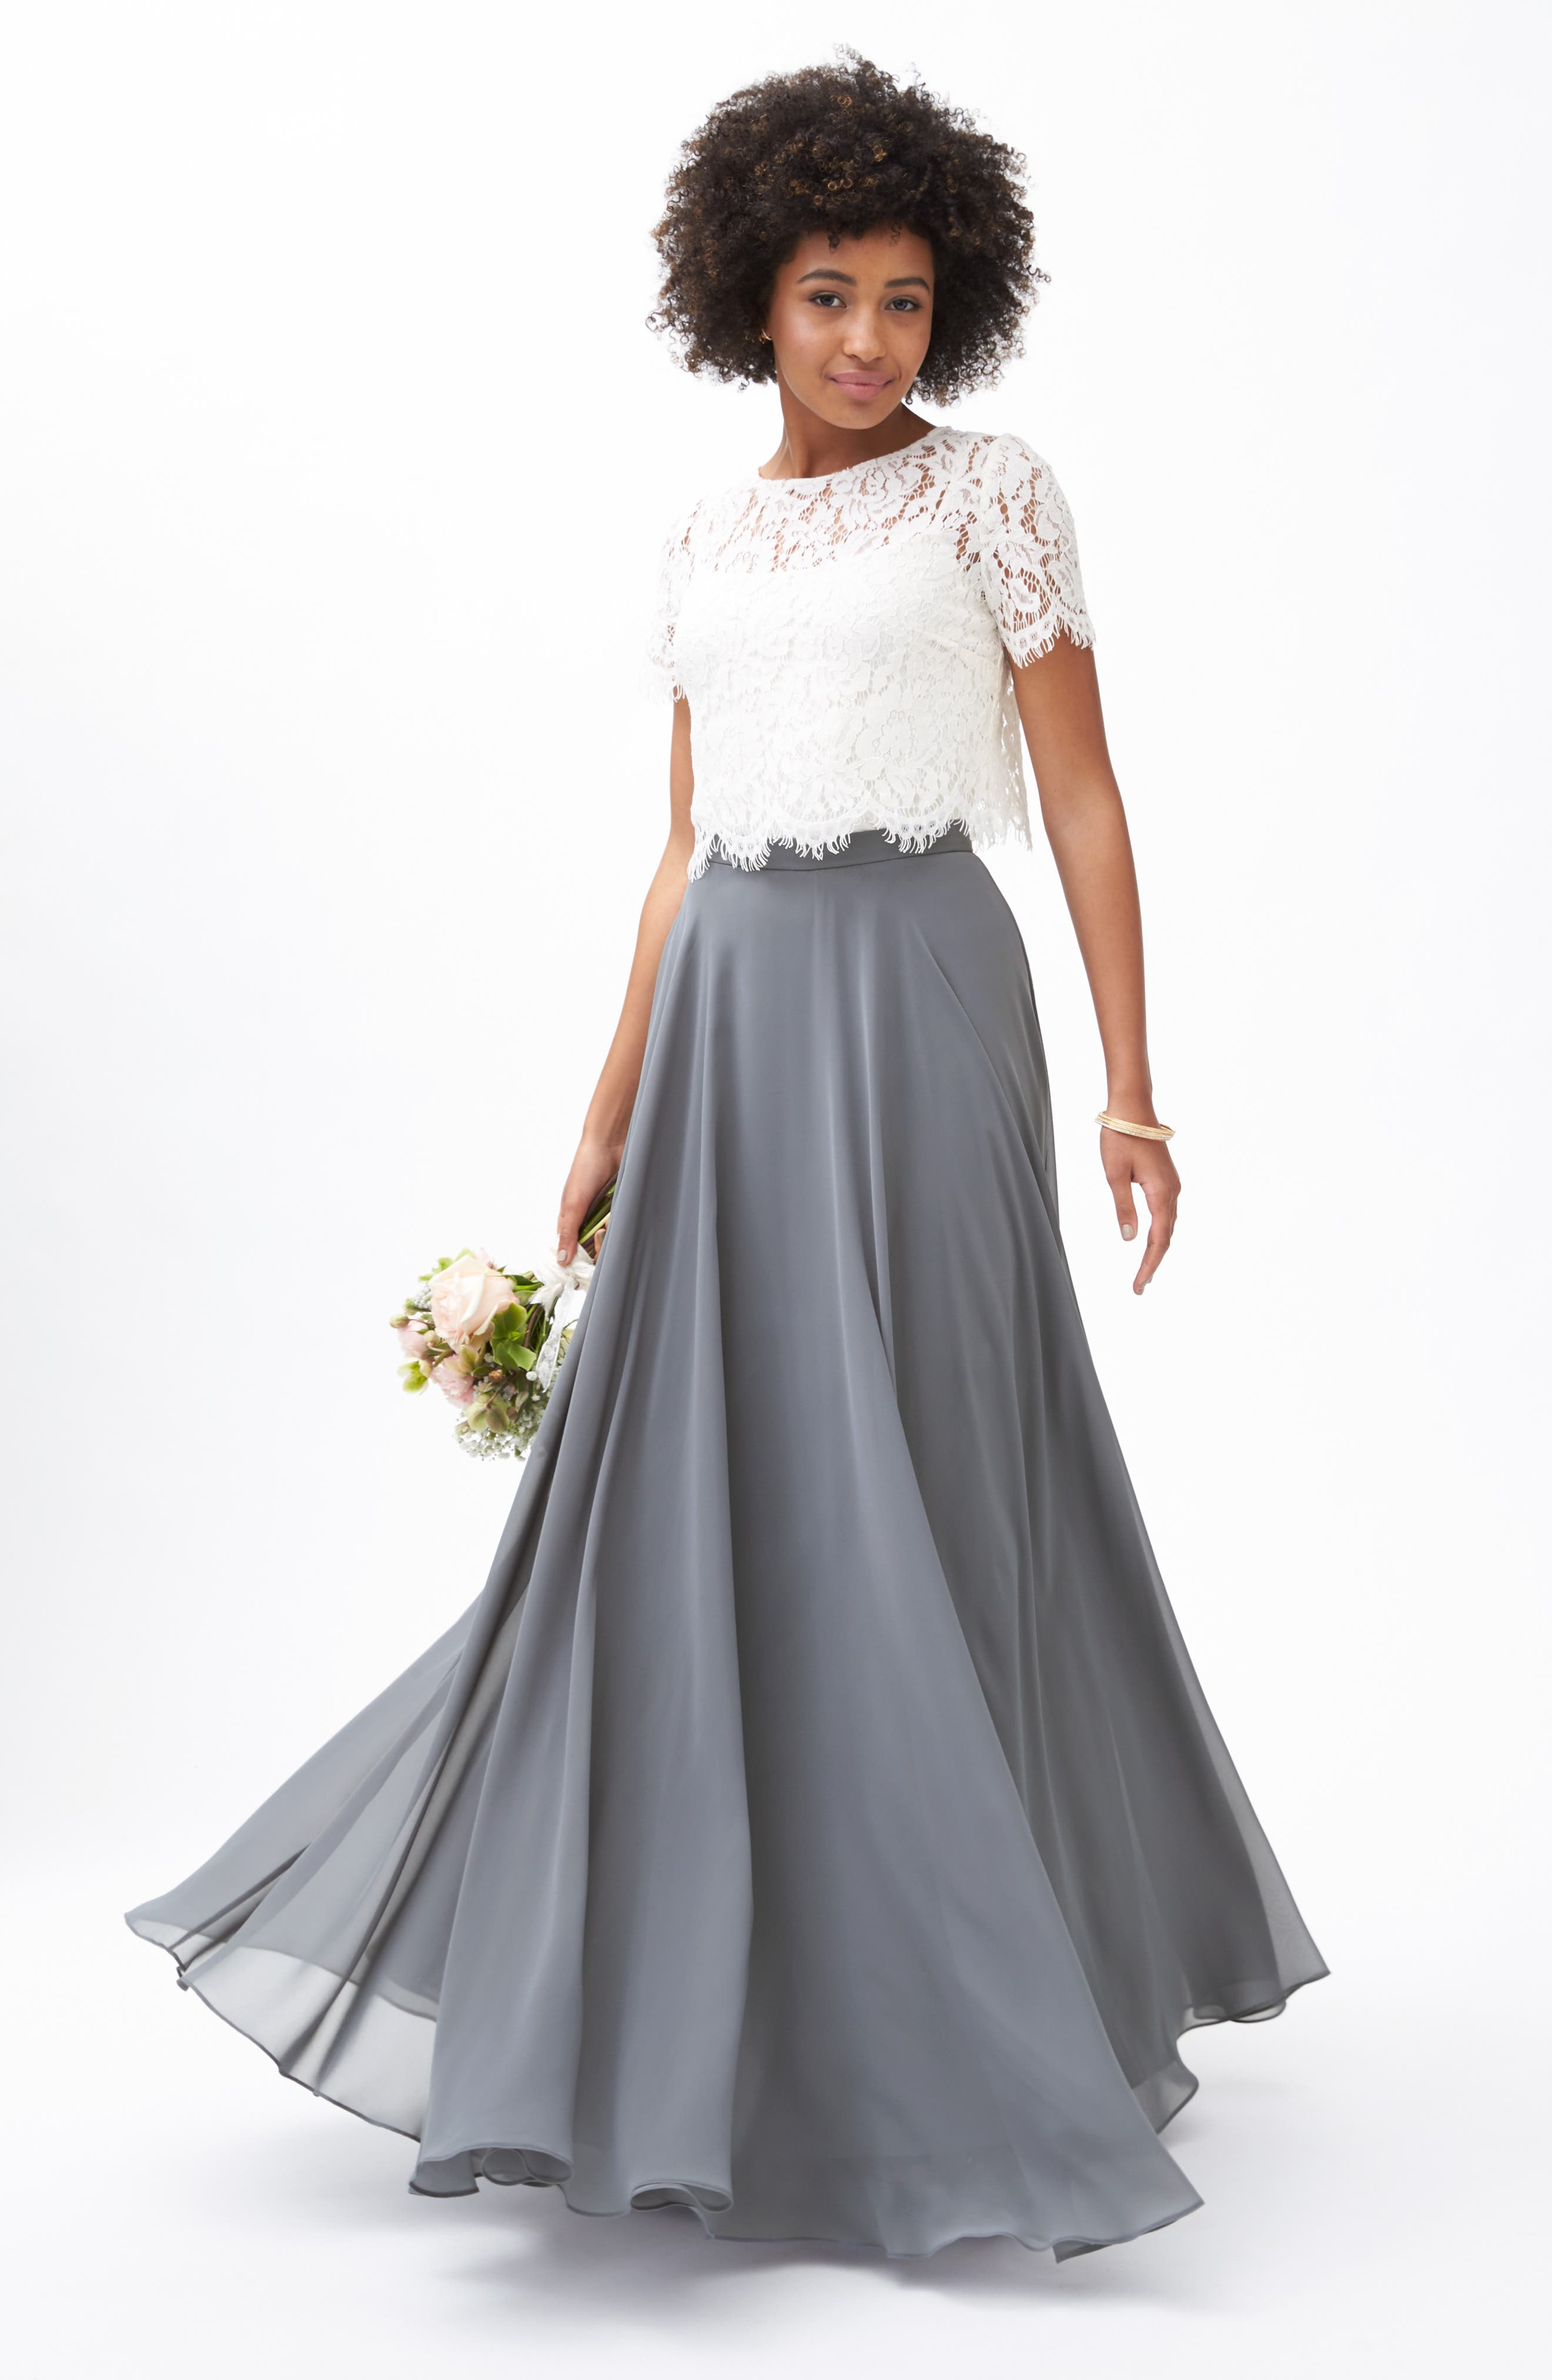 Hampton Long A-Line Chiffon Skirt,                             Alternate thumbnail 8, color,                             DENMARK BLUE